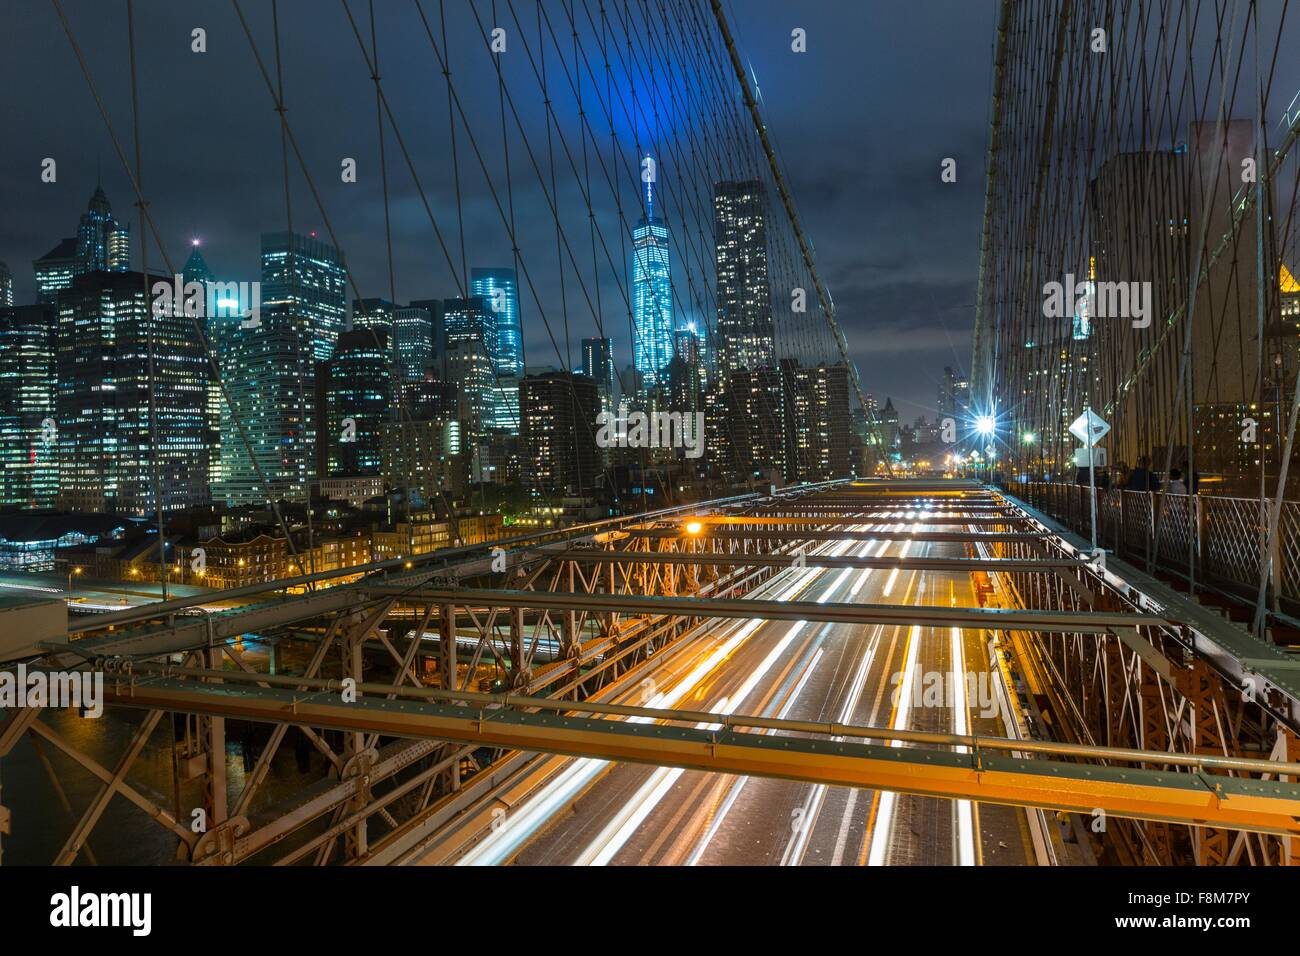 Elevated view of Brooklyn bridge and Manhattan financial district skyline at night, New York, USA - Stock Image